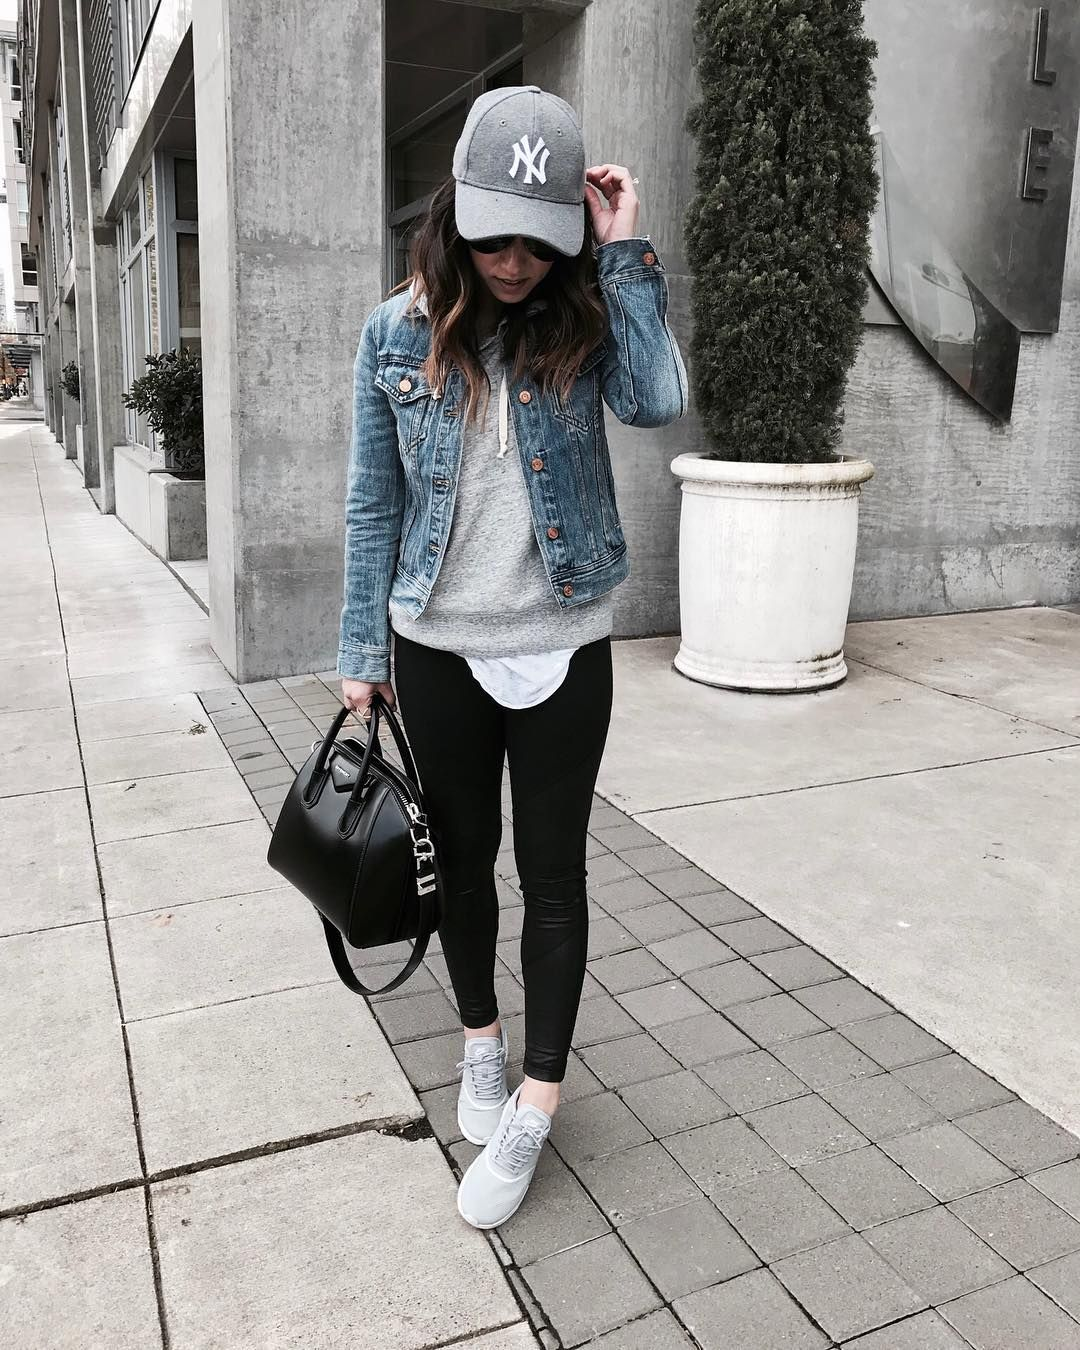 Instagram Athleisure Outfits Casual Winter Outfits Outfits With Leggings [ 1350 x 1080 Pixel ]